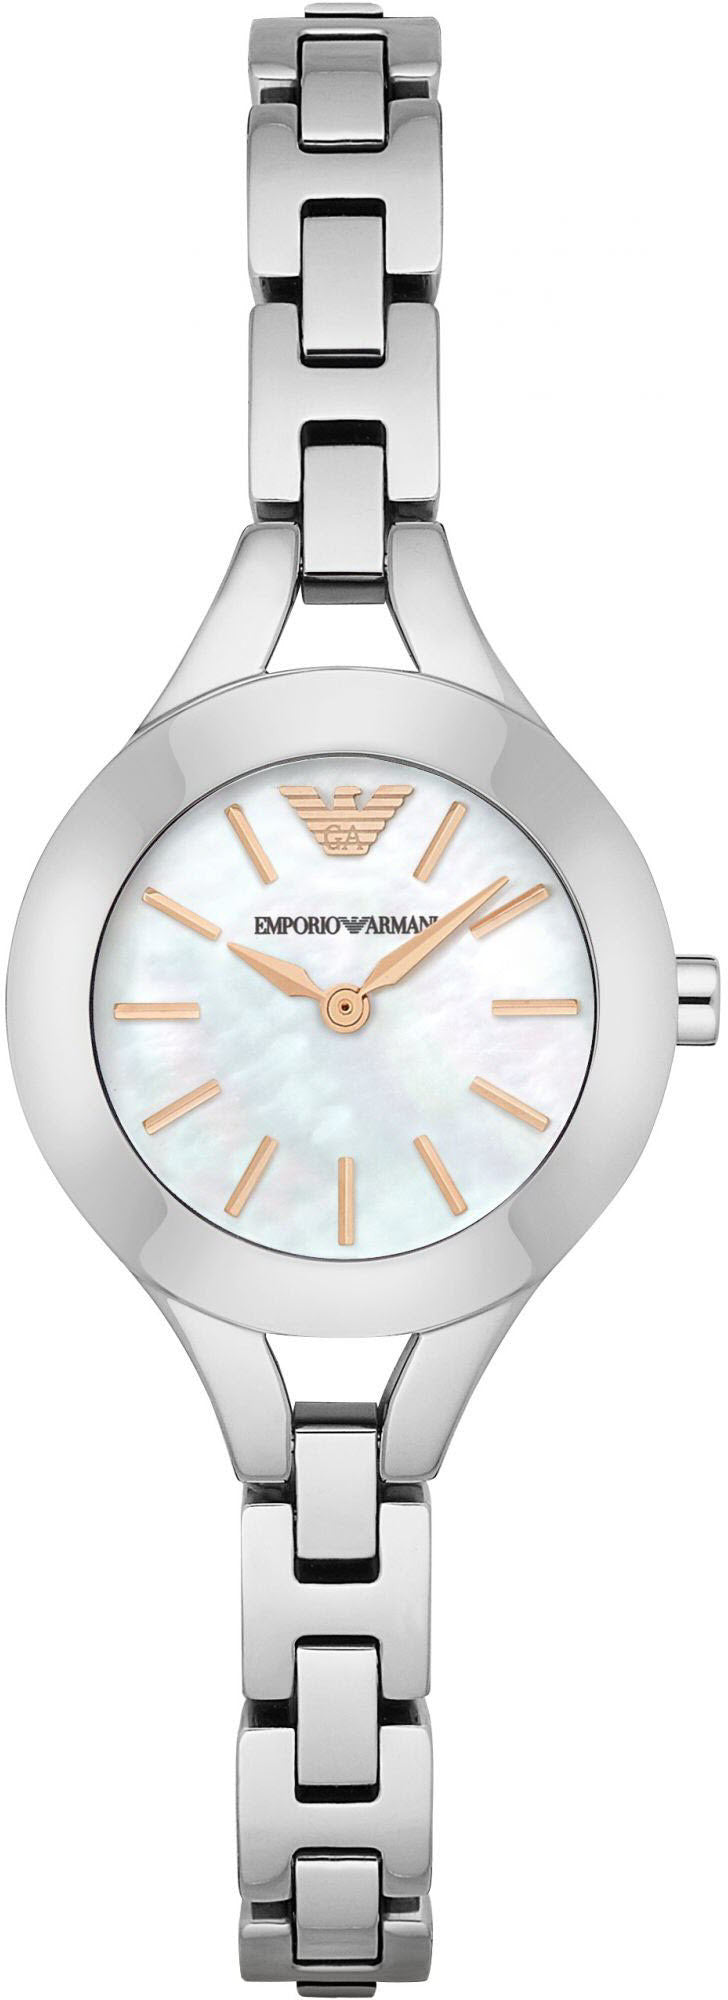 Emporio Armani Watch Chiara Ladies